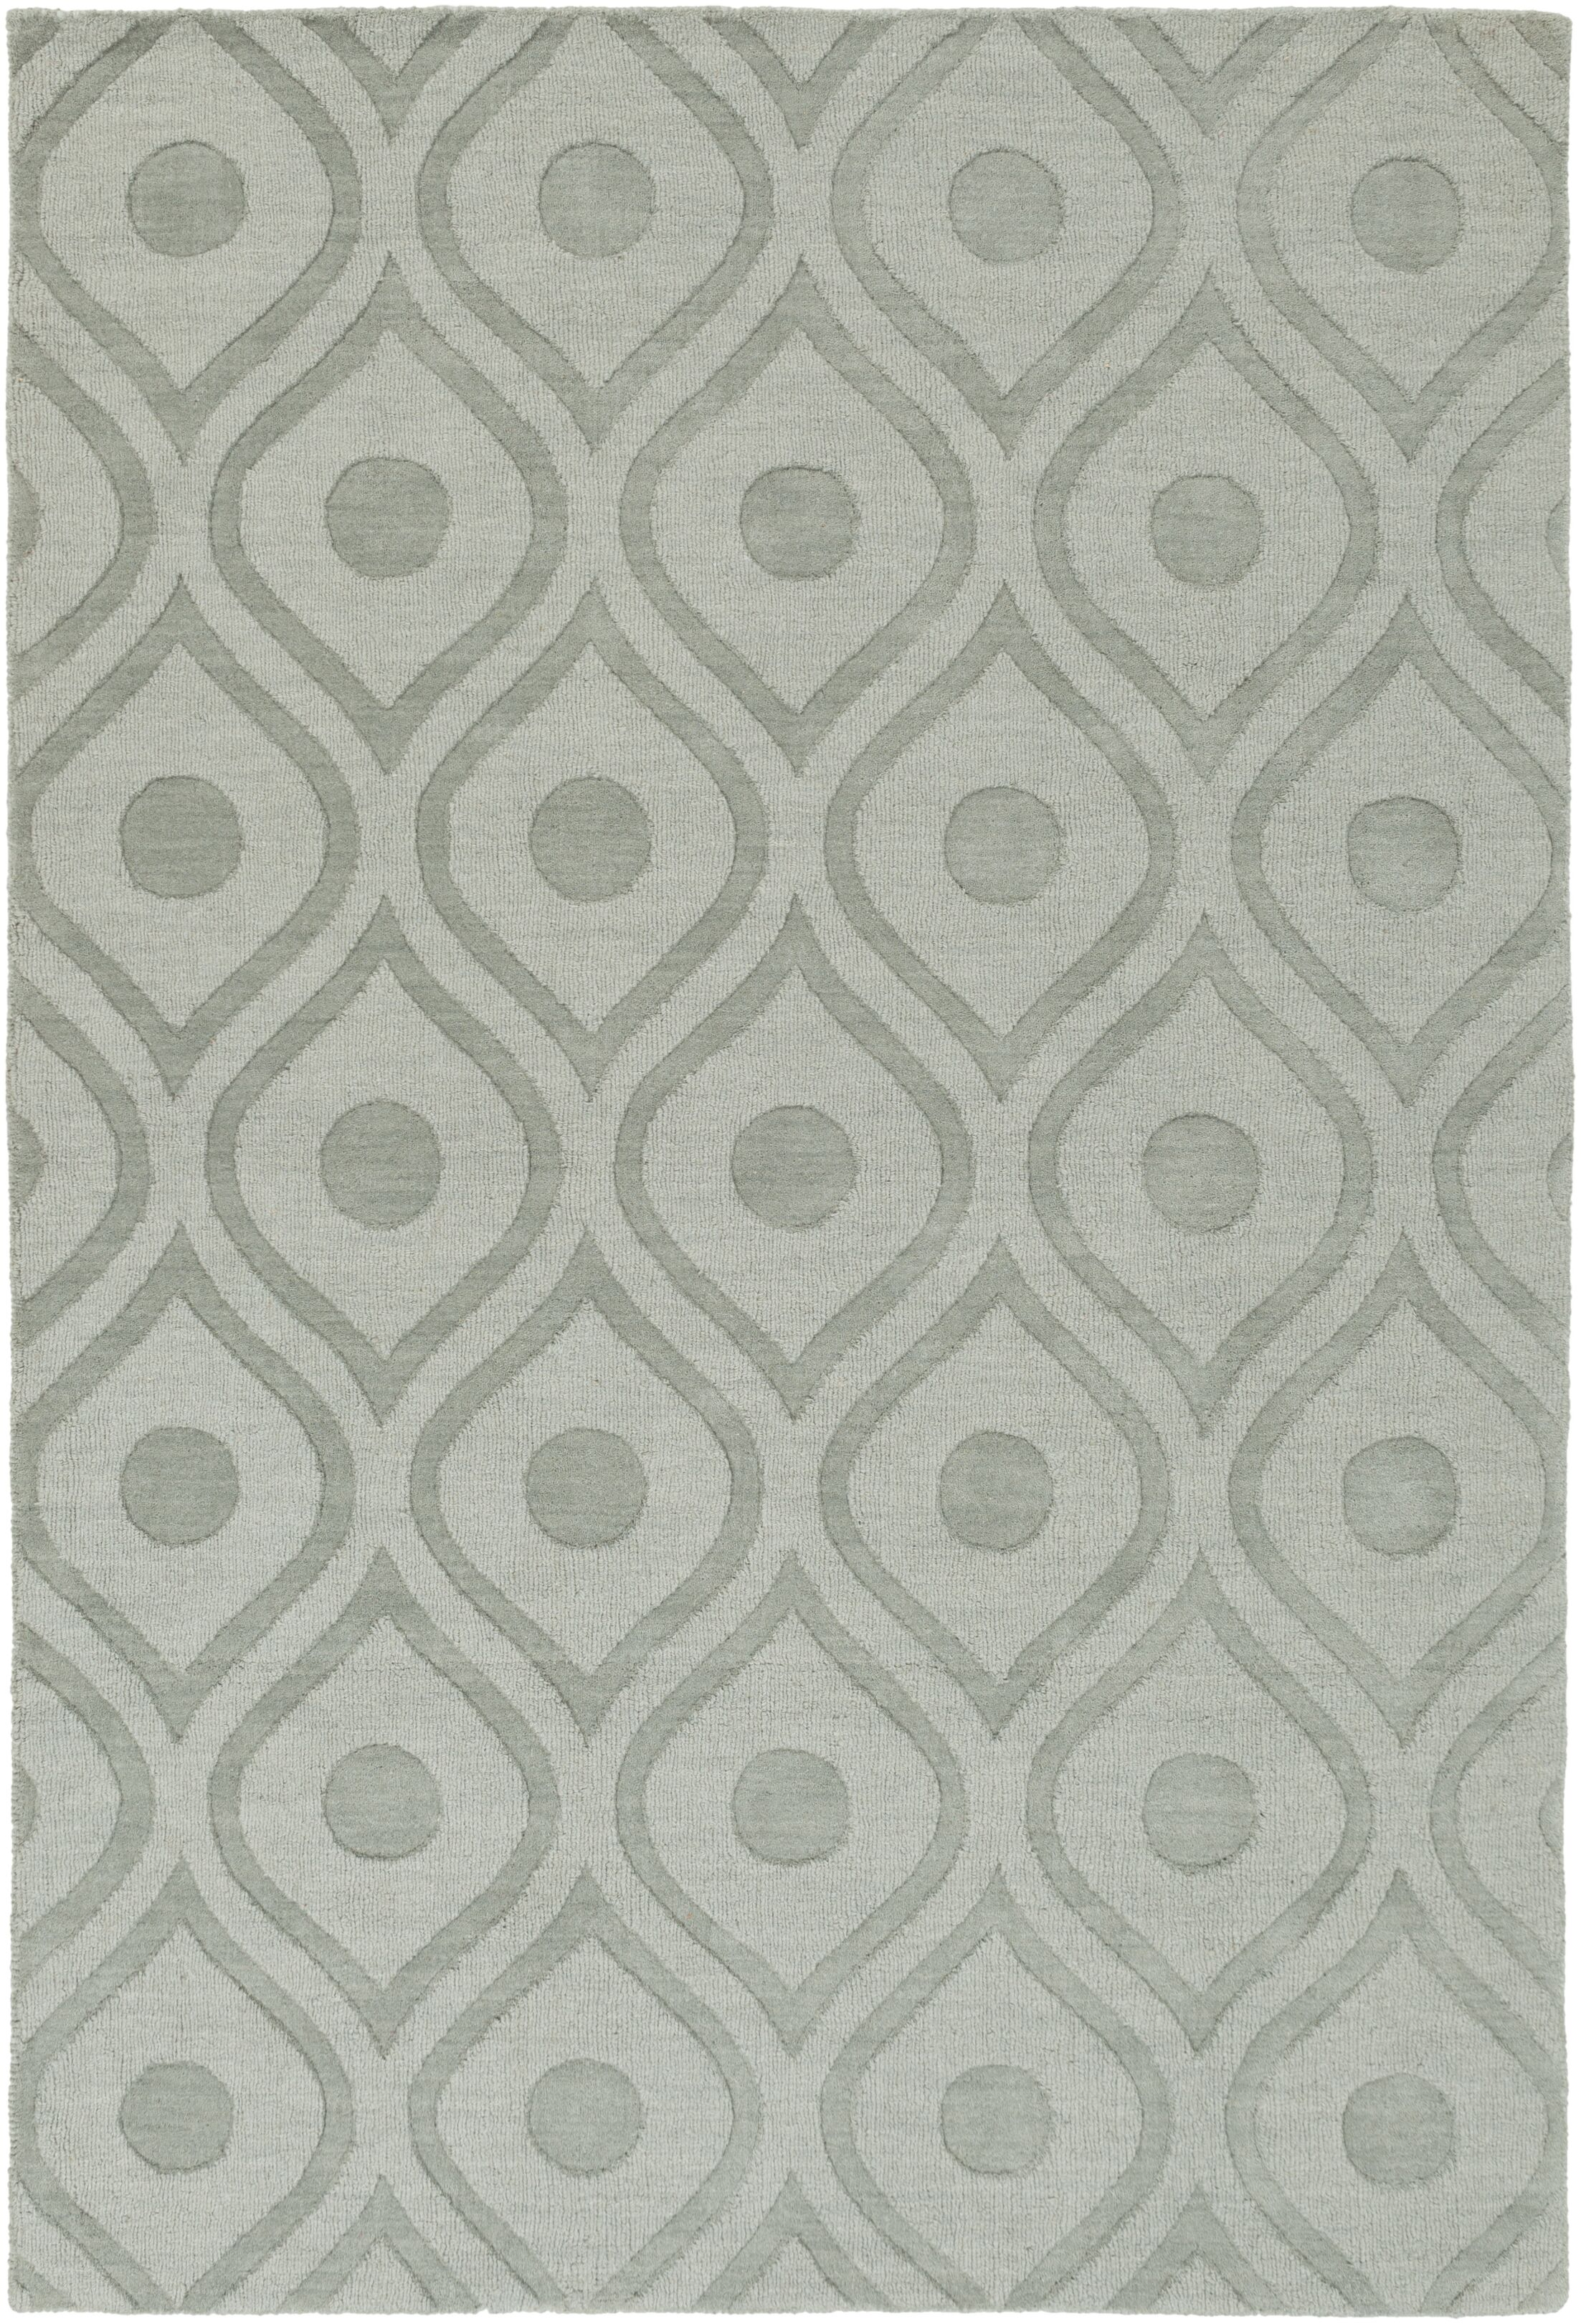 Castro Hand Woven Wool Blue-Gray Area Rug Rug Size: Rectangle 6' x 9'